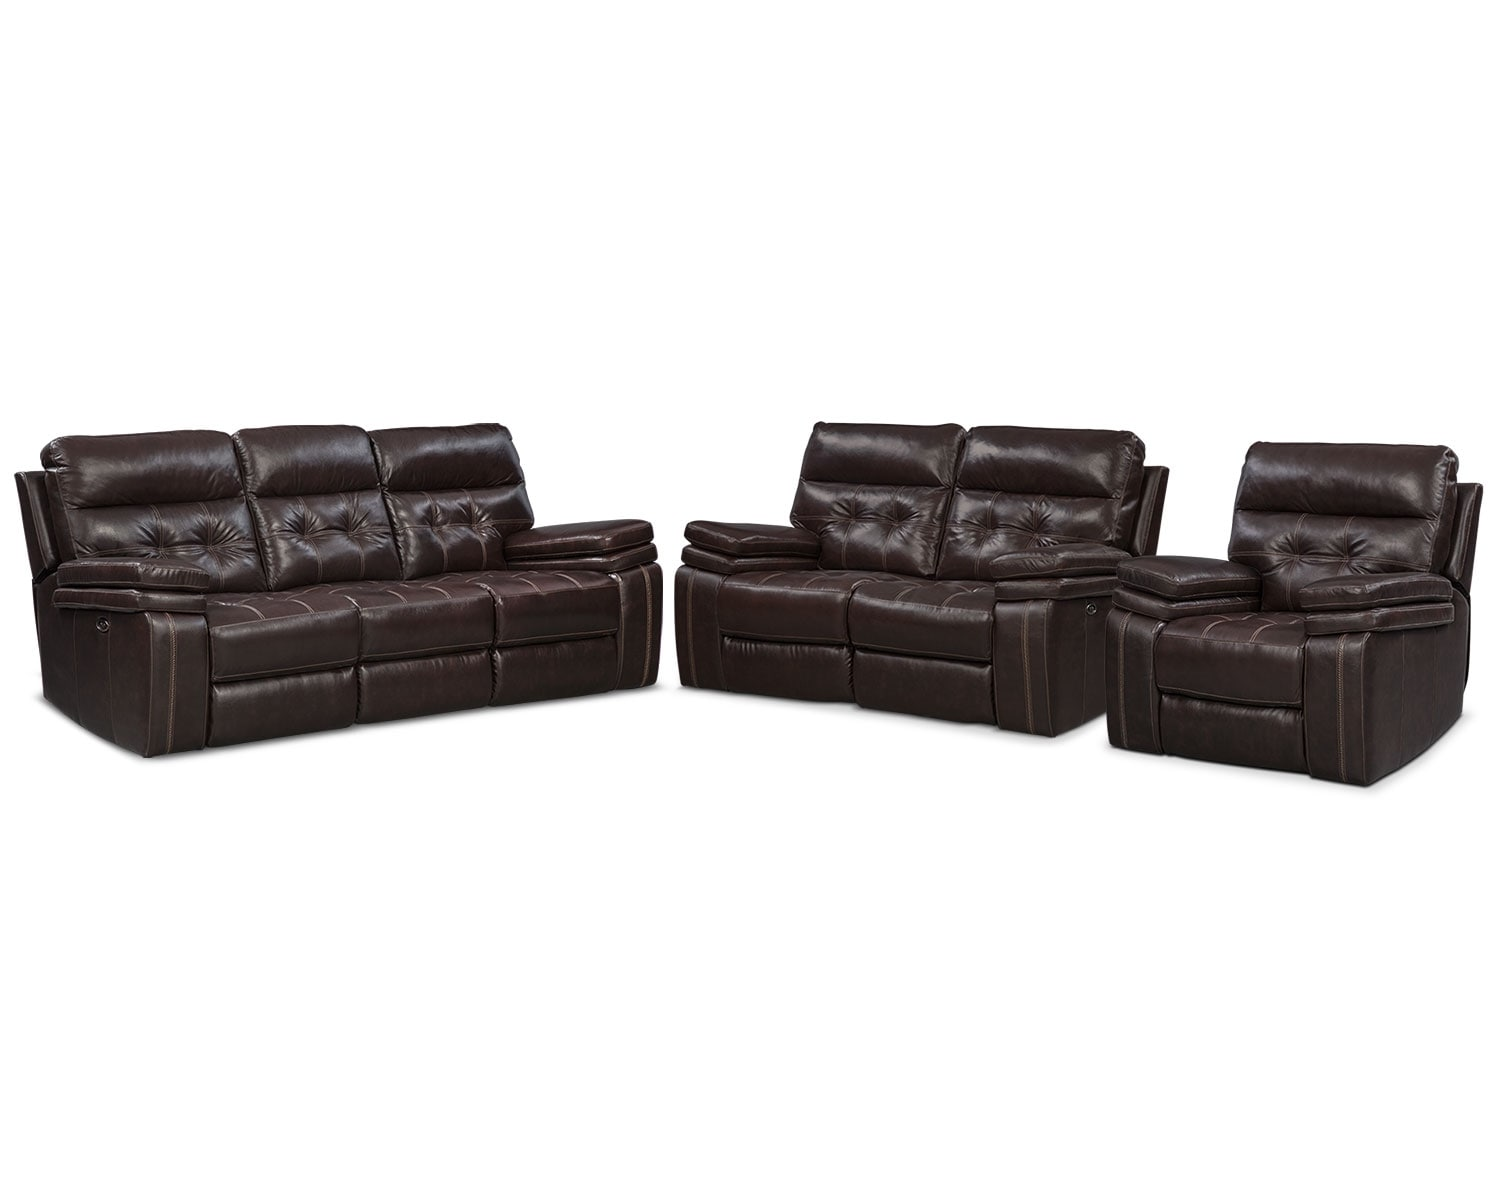 The Brisco Brown Power Reclining Collection